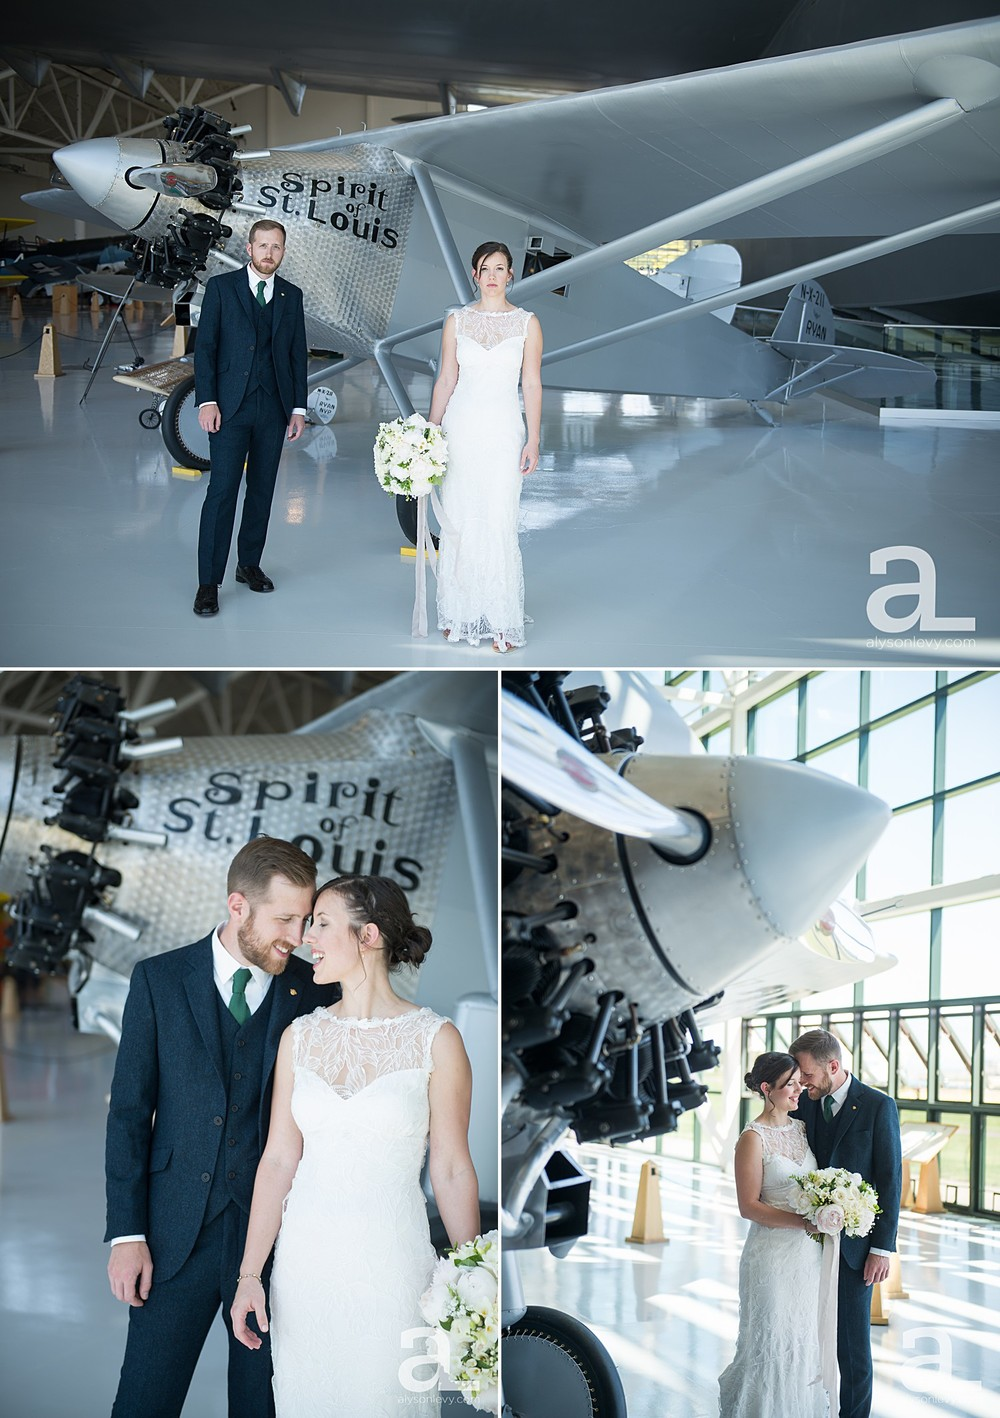 McMinnville-Aviation-Museum-Wedding-Photography_0012.jpg